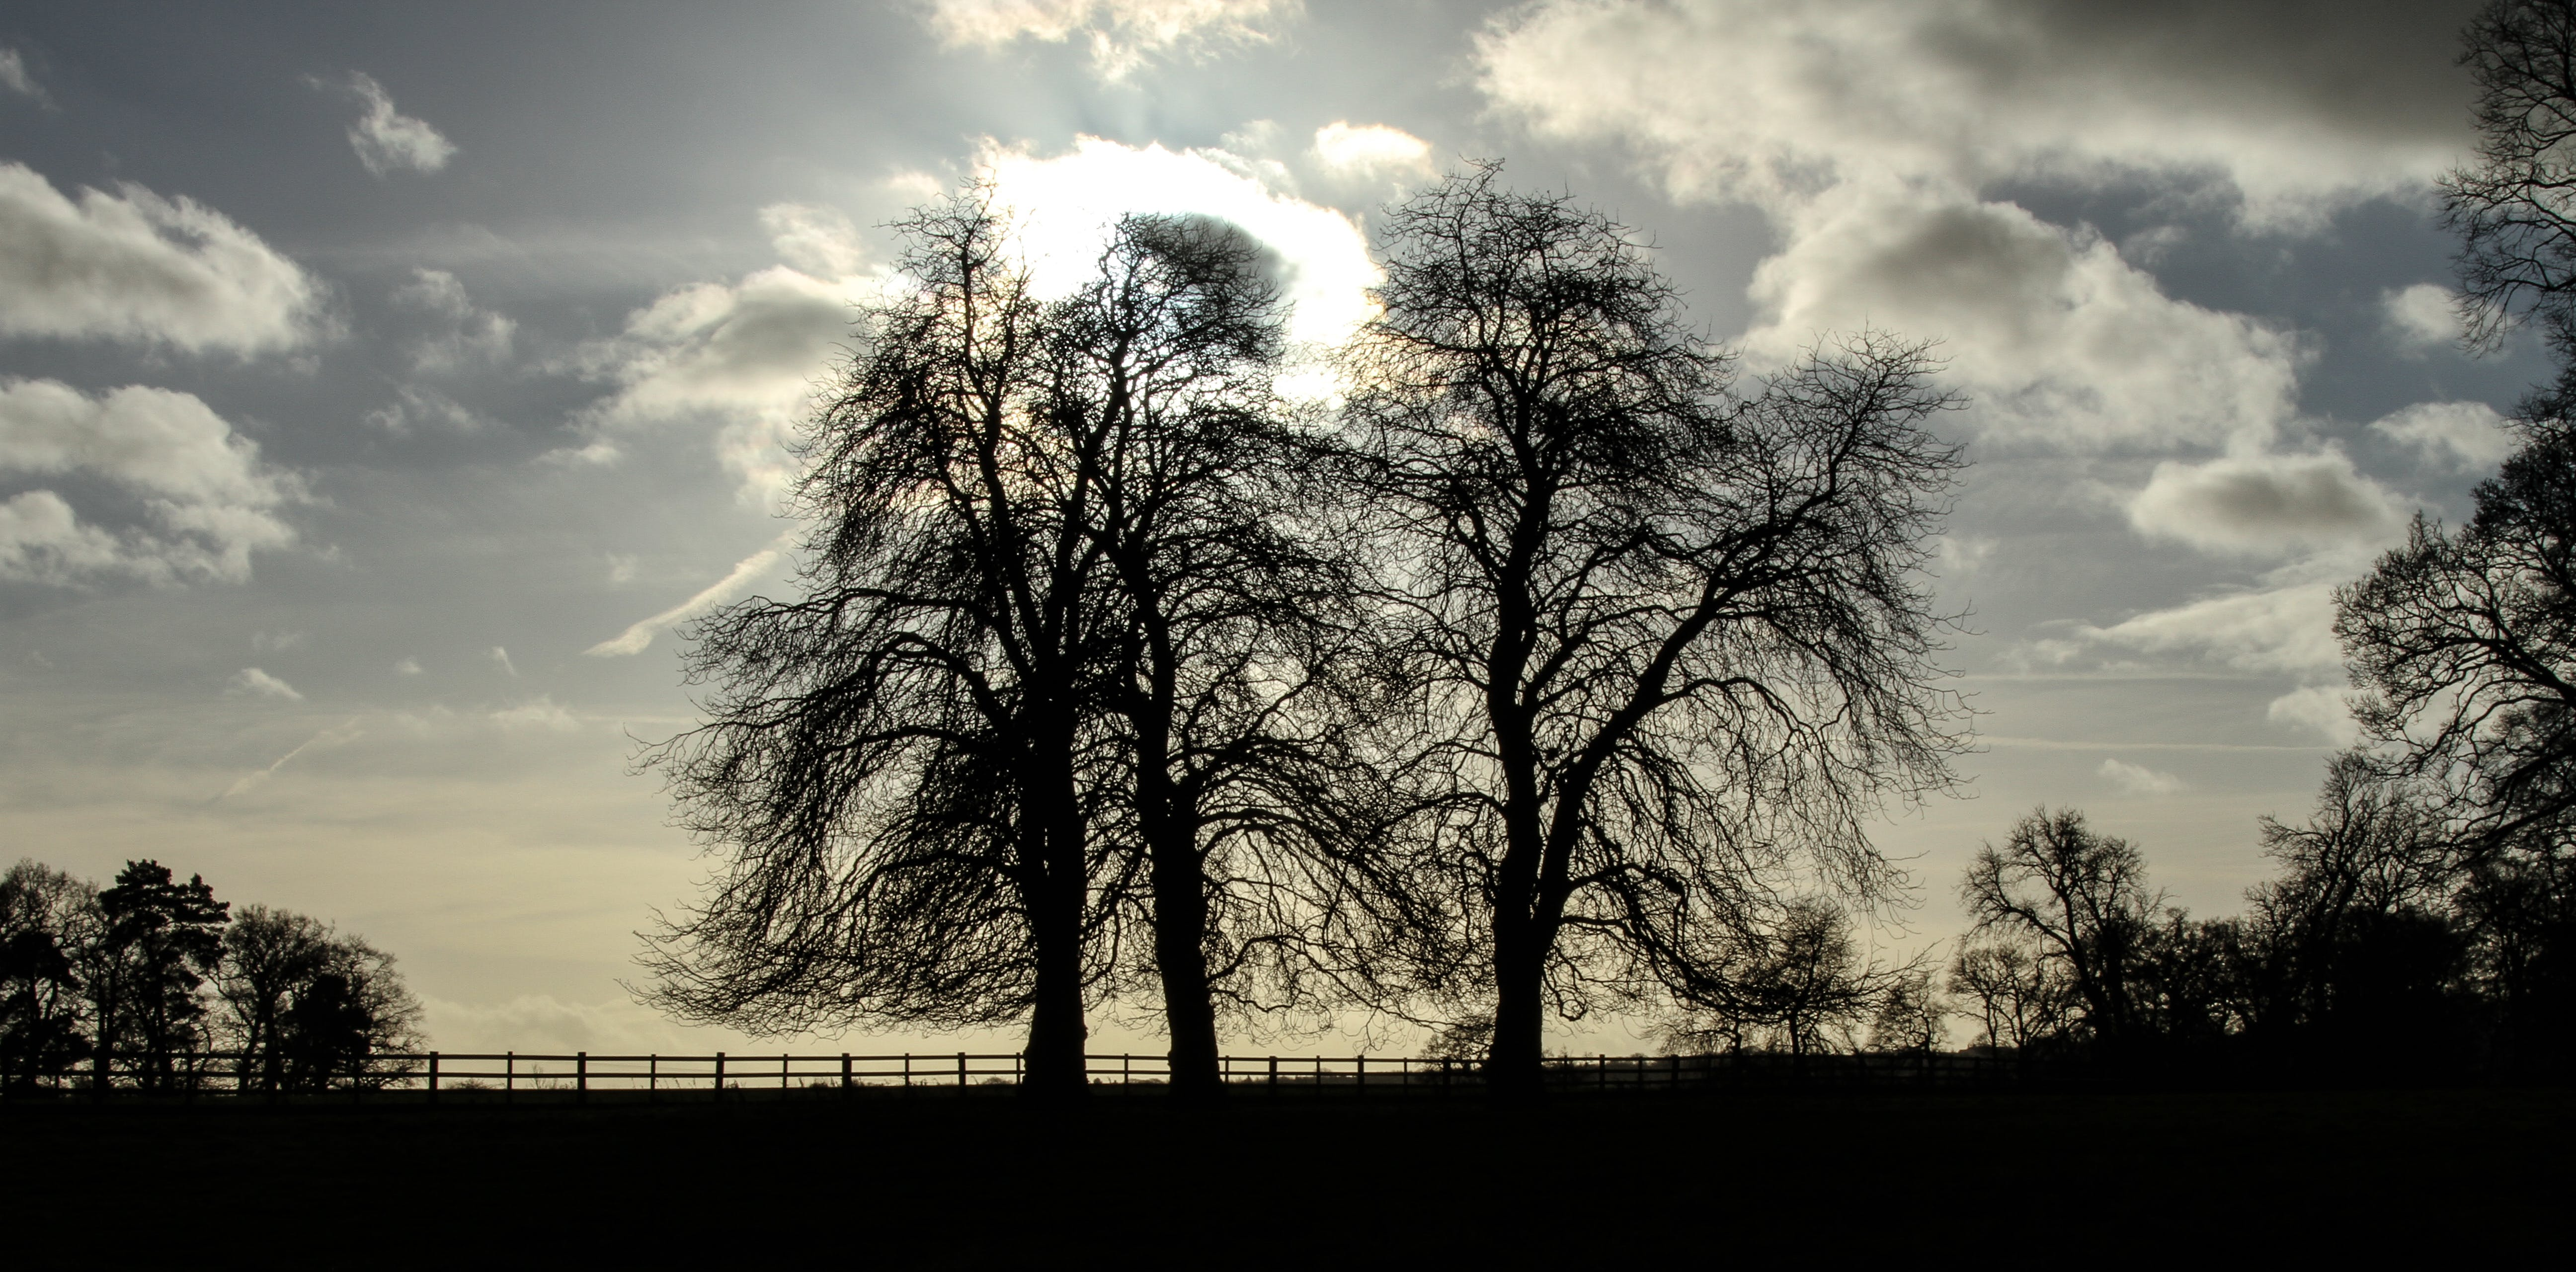 Free stock photo of clouds, sunshine, trees, silhouette